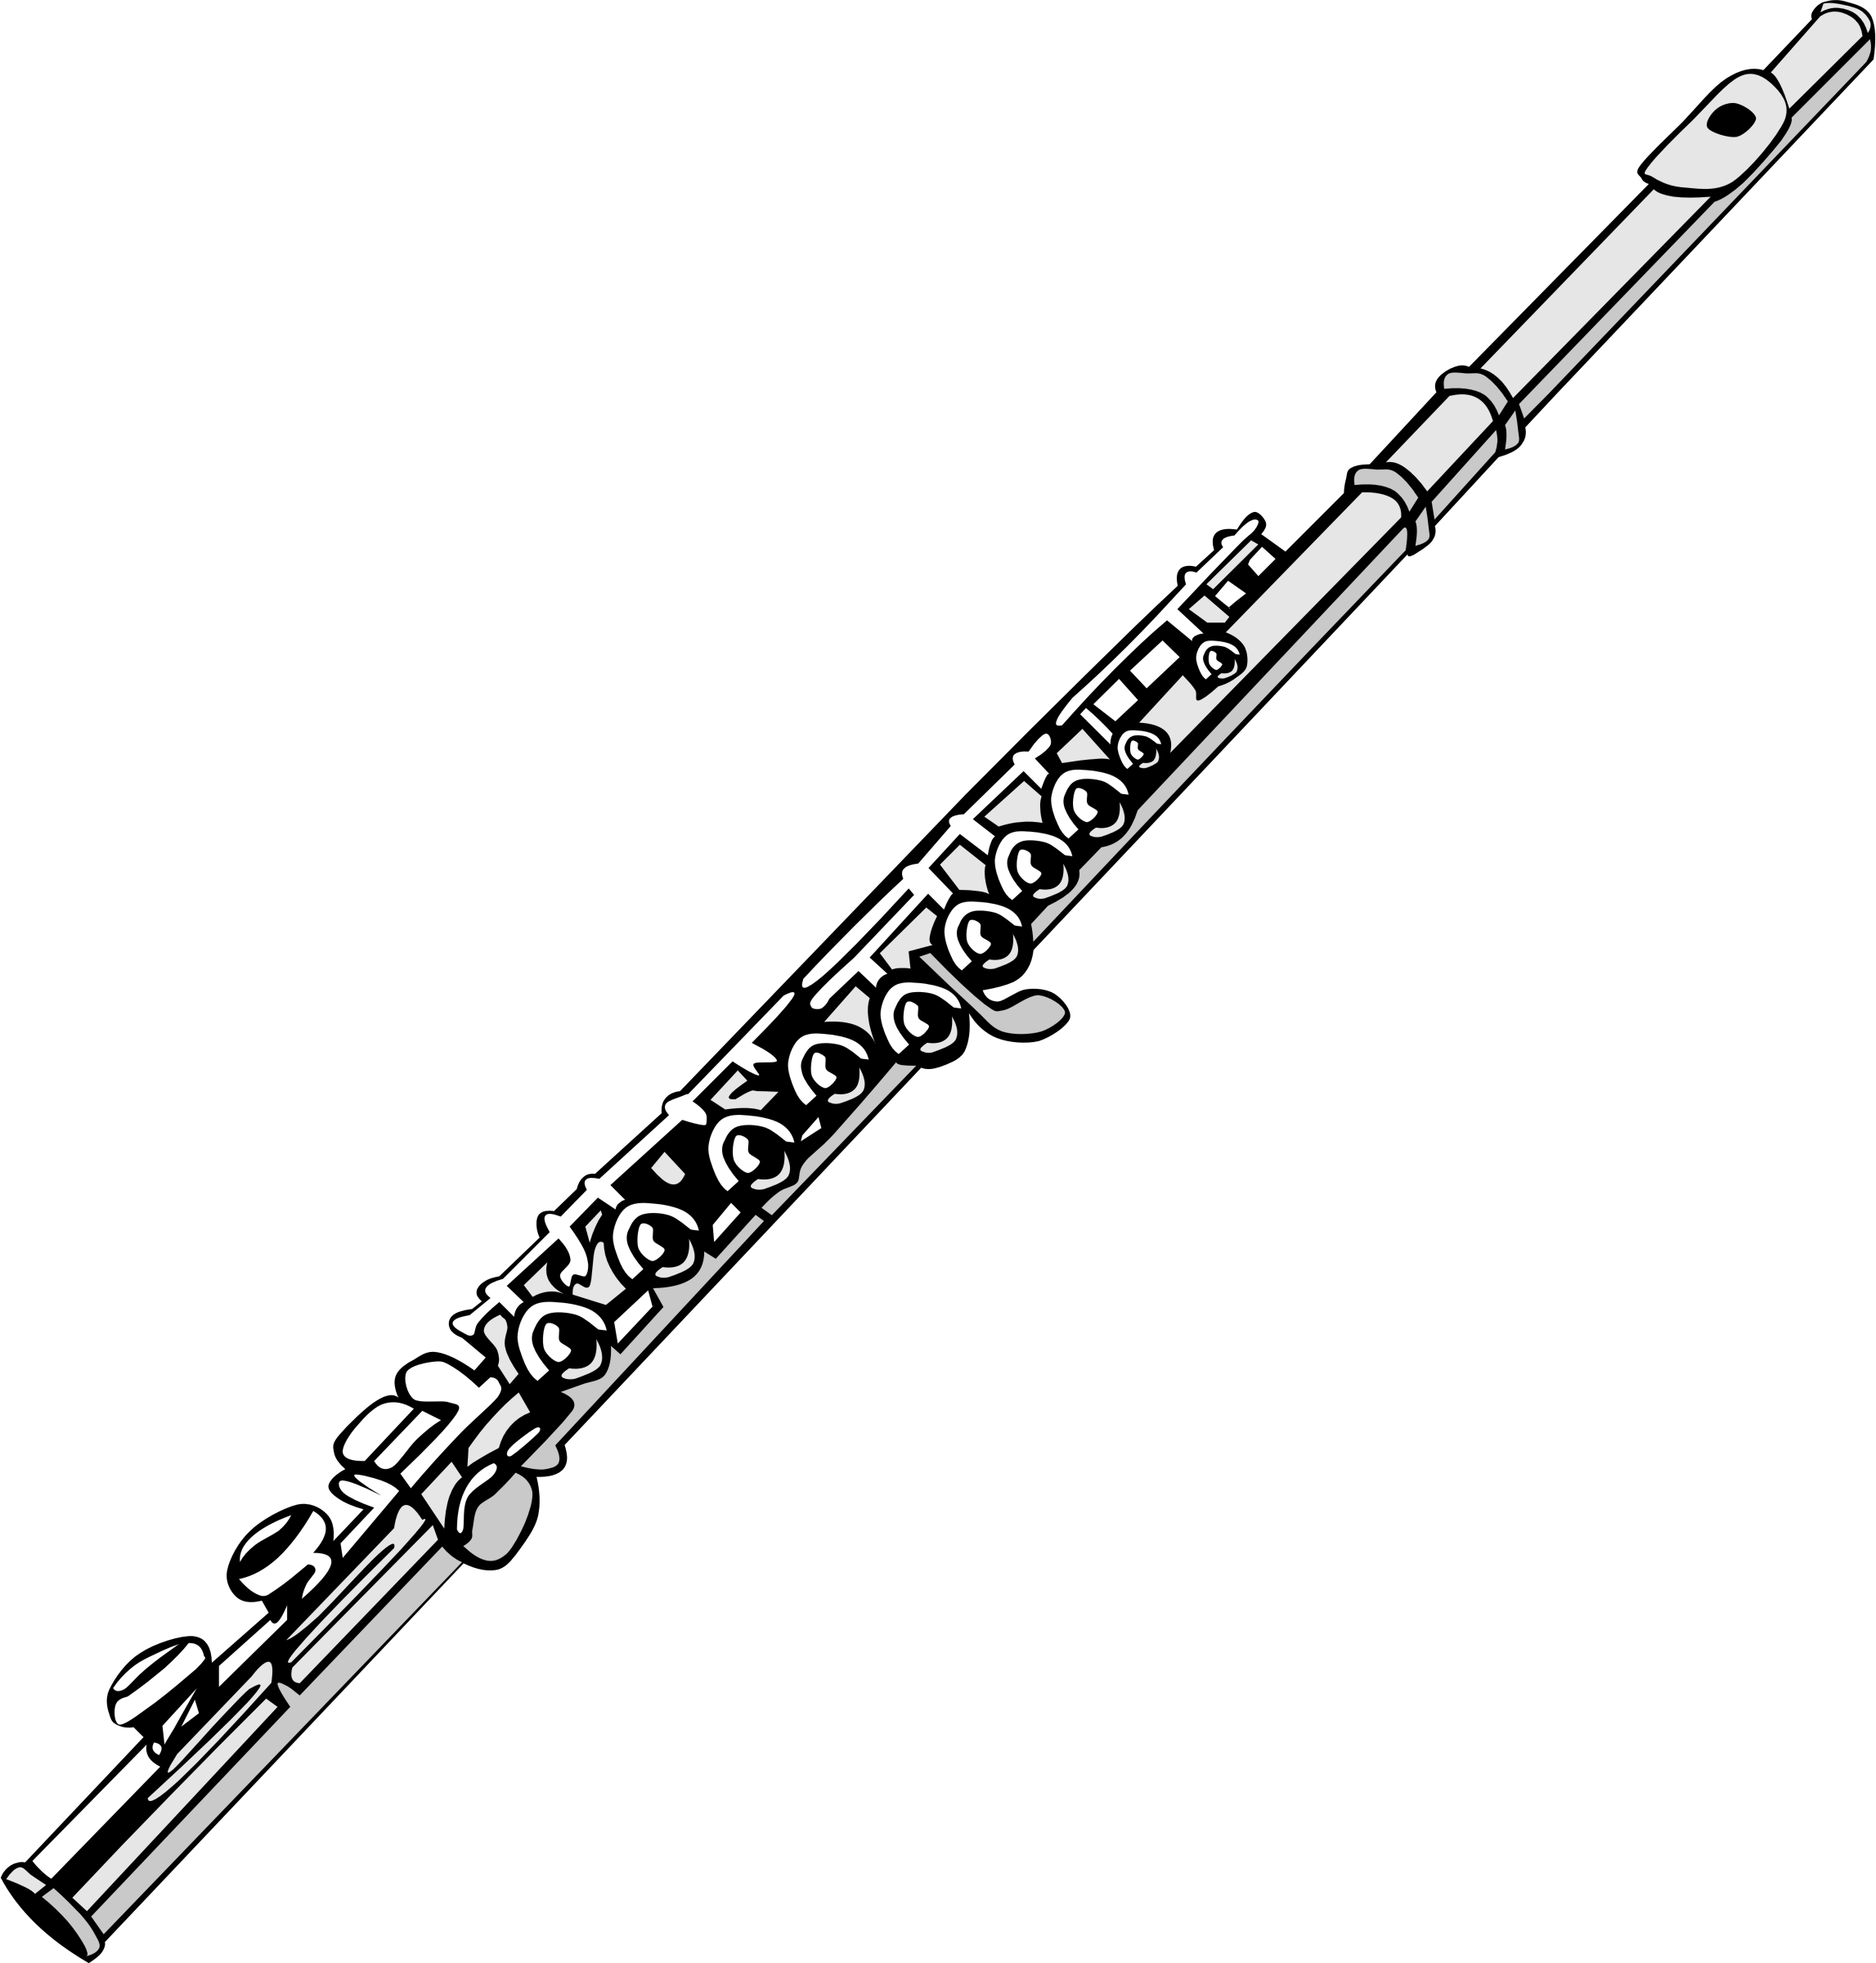 clipart flute huge. Oboe drawing easy clip art library download